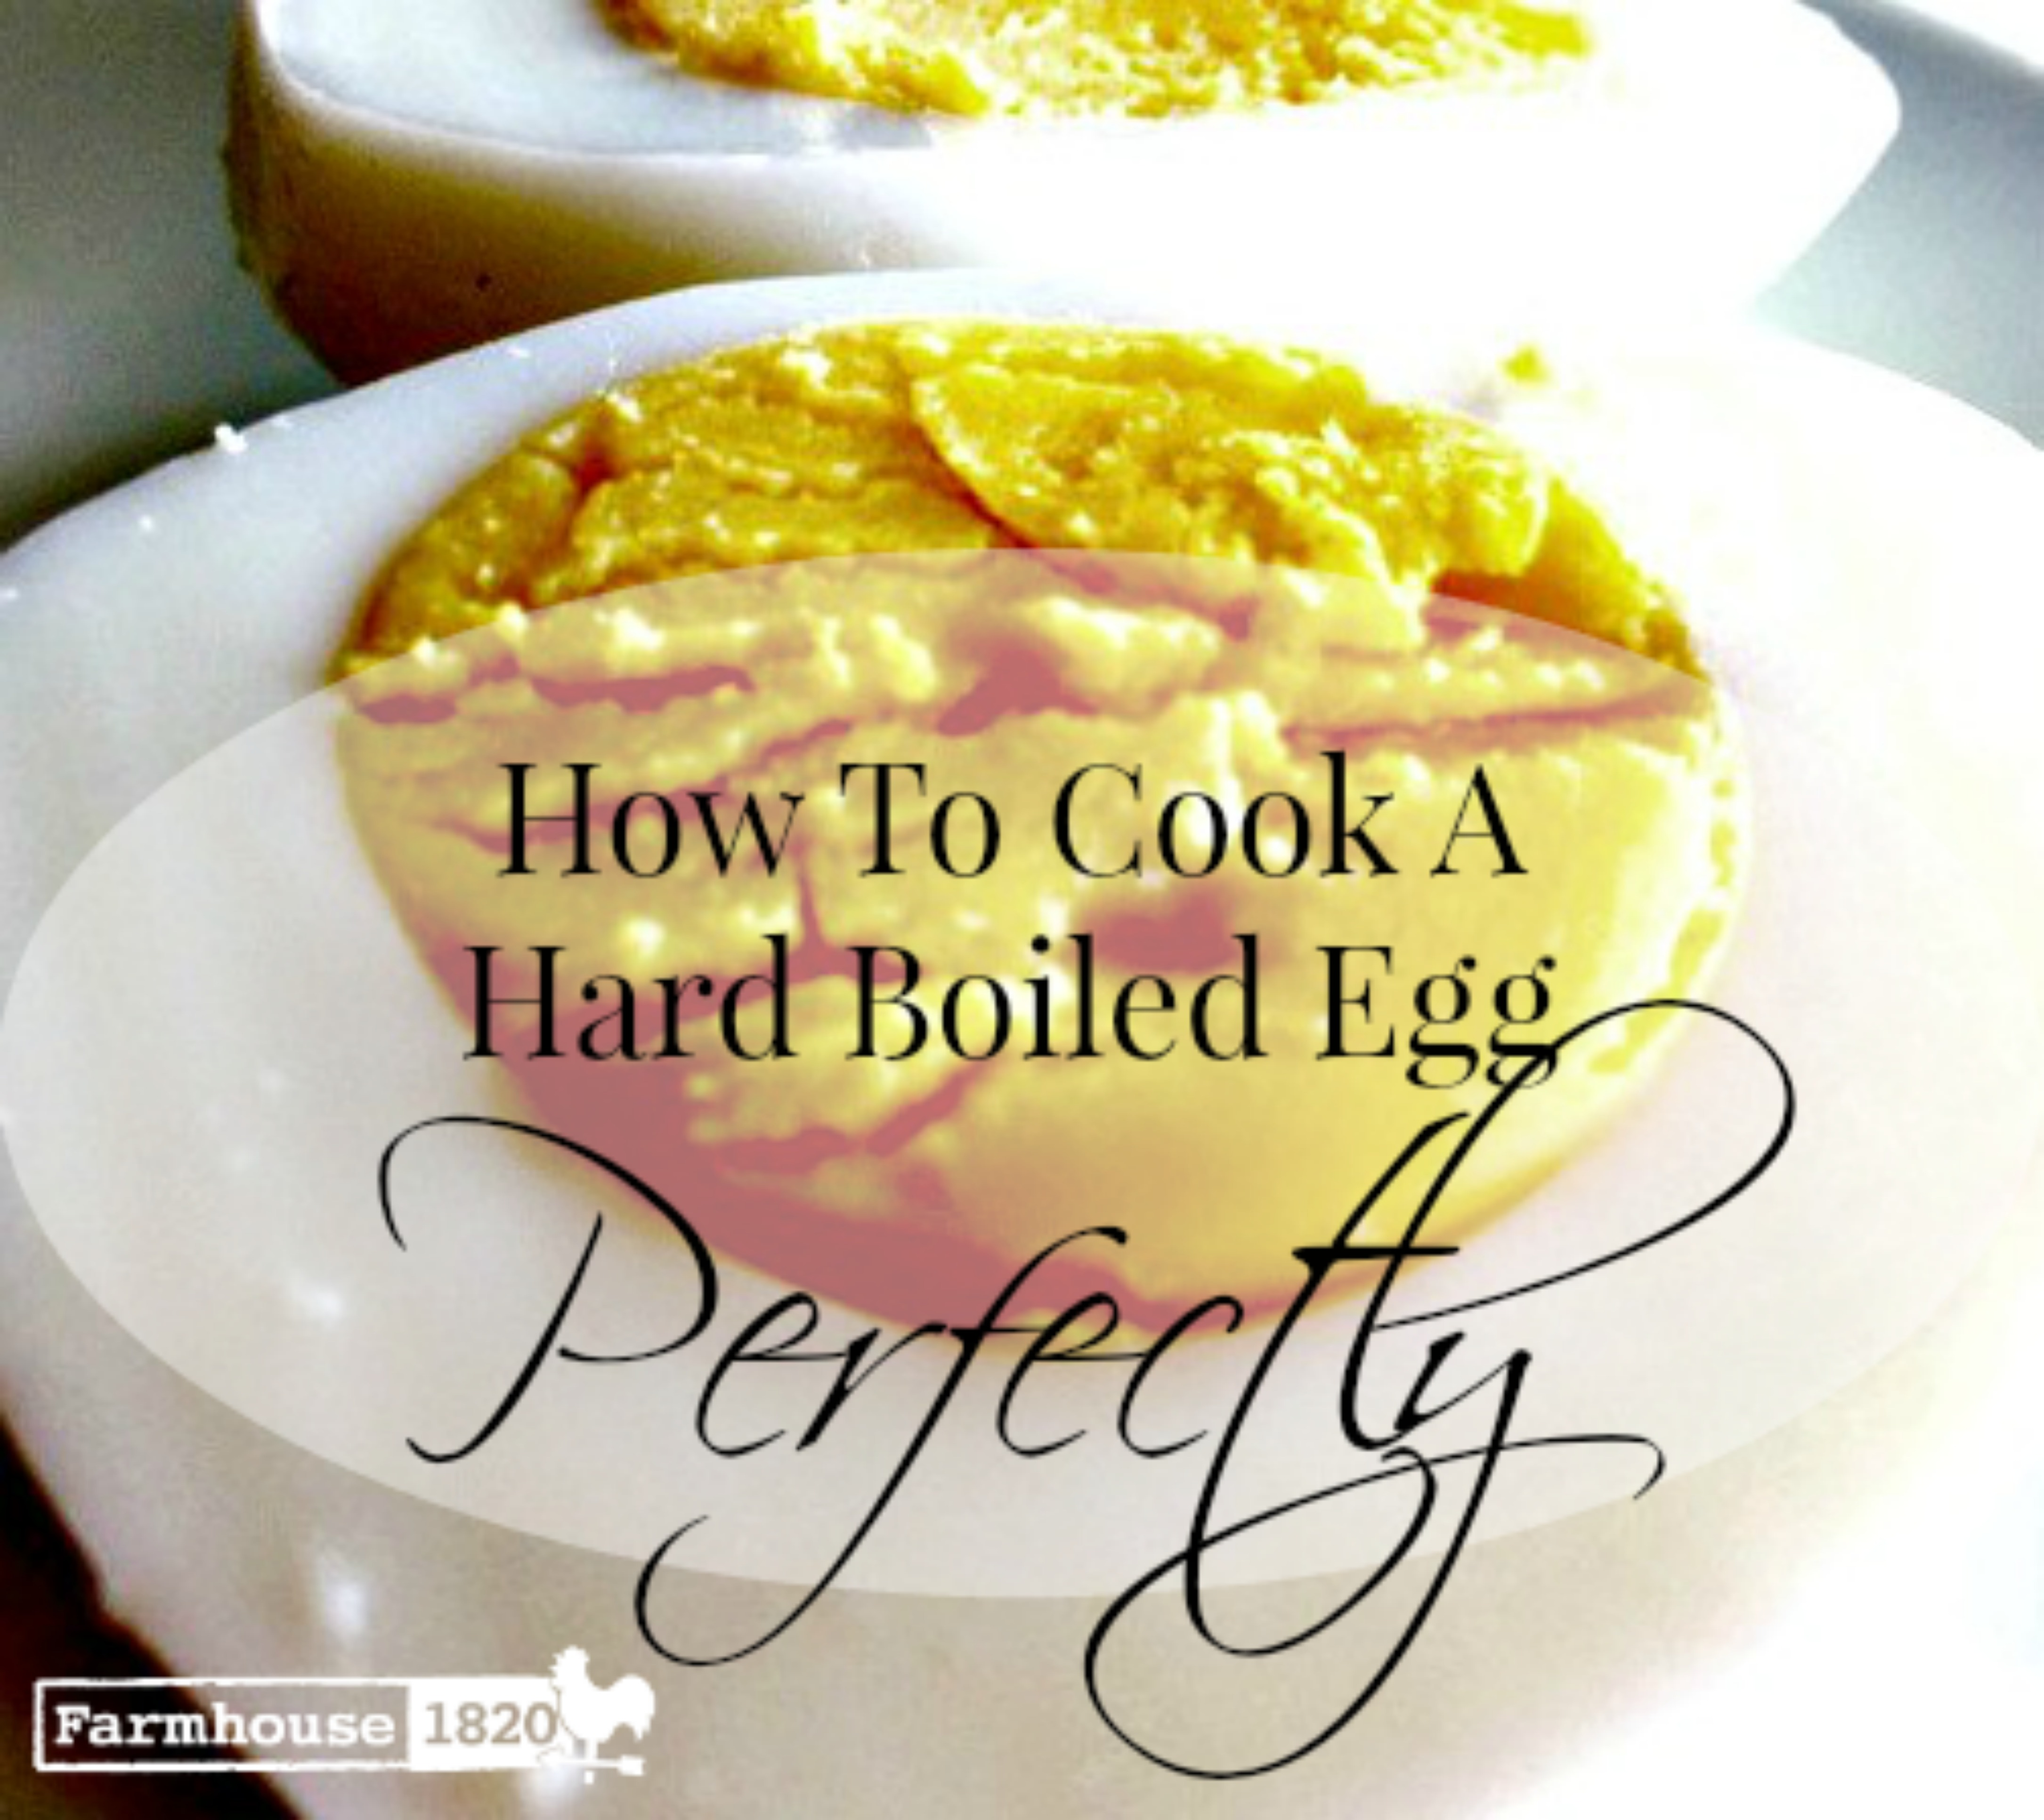 Hard Boiled Egg - Perfectly cooking a hard boiled egg